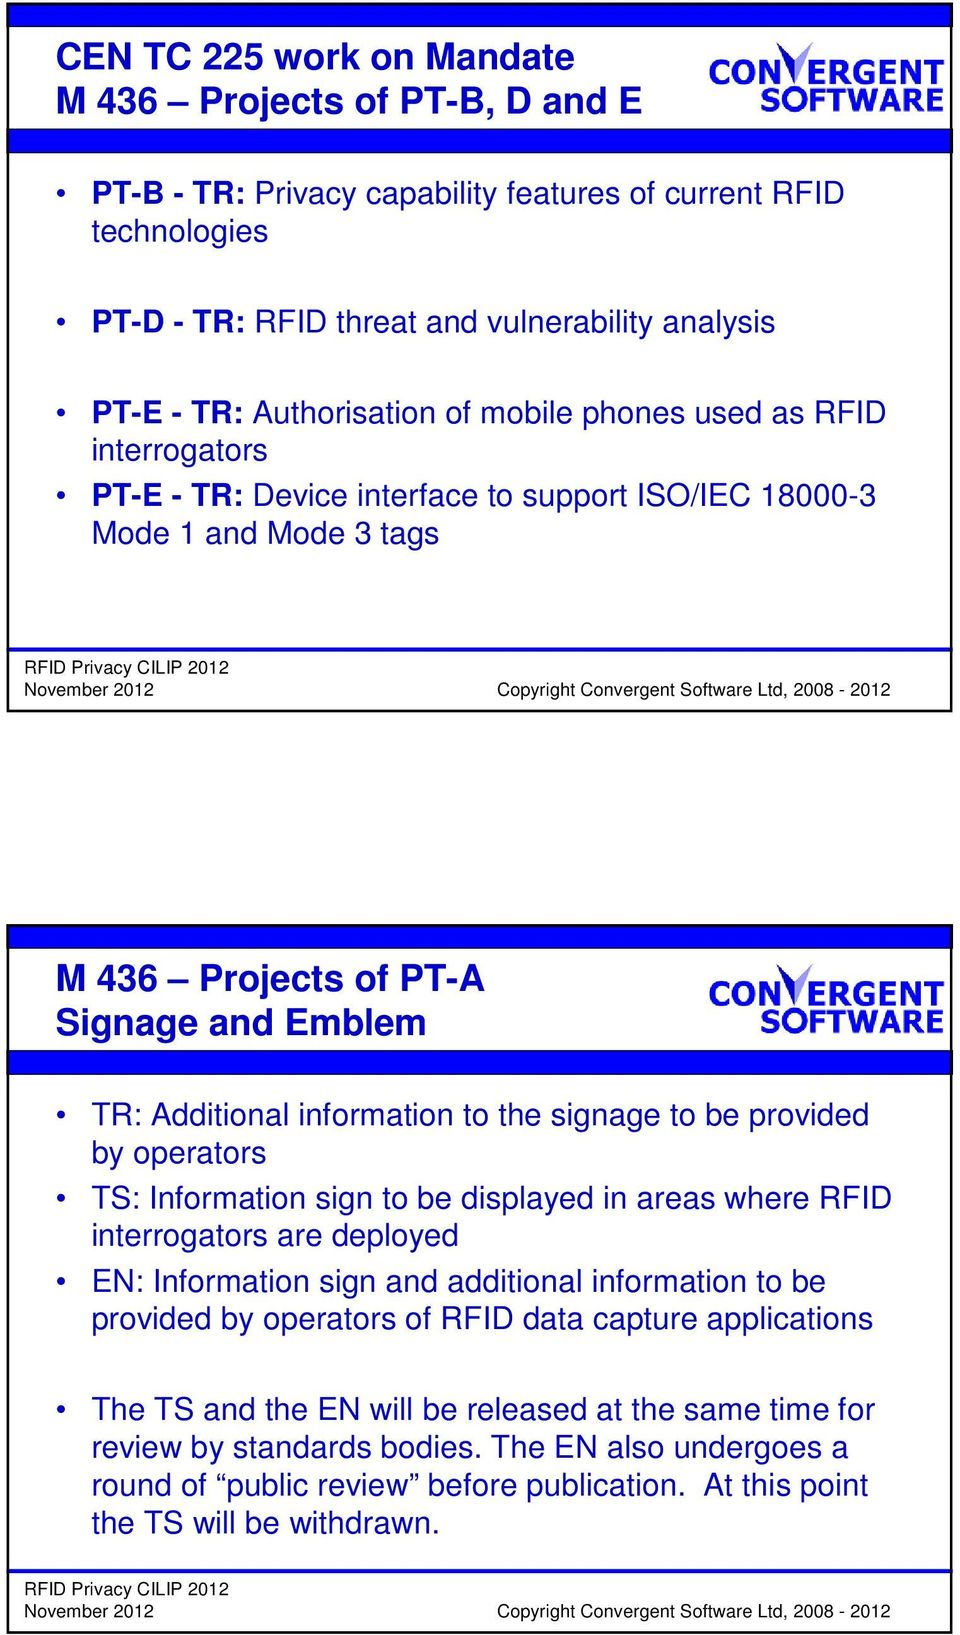 information to the signage to be provided by operators TS: Information sign to be displayed in areas where RFID interrogators are deployed EN: Information sign and additional information to be